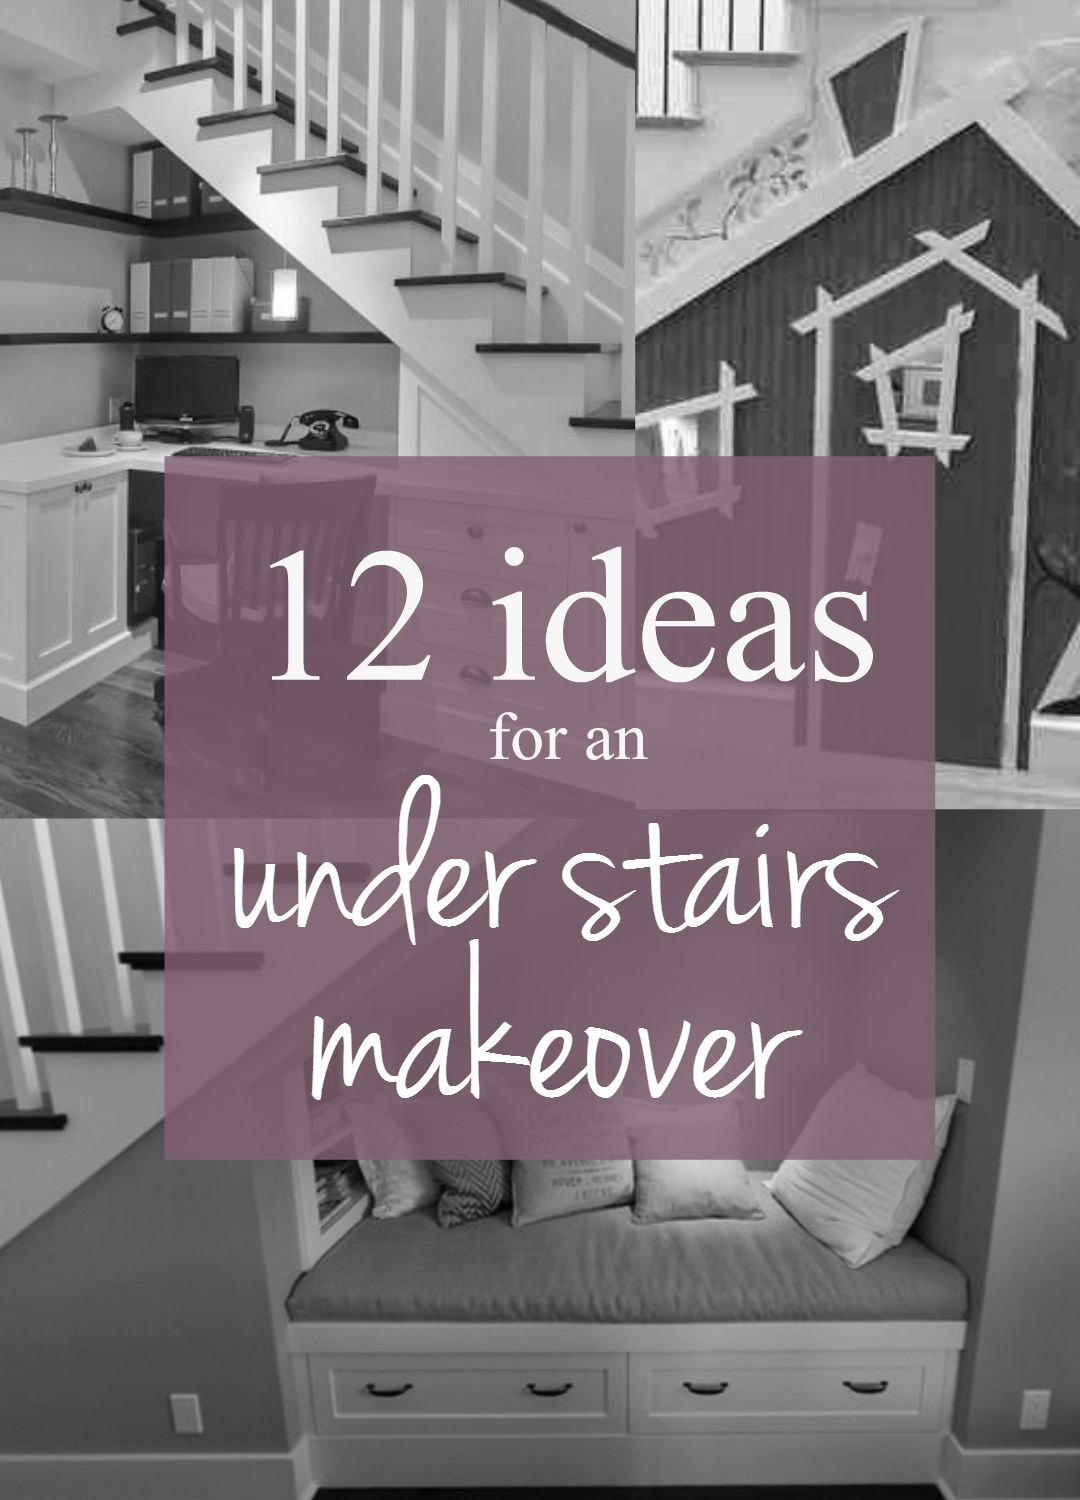 12 ideas for an under stairs makeover from TheEssexBarn.com